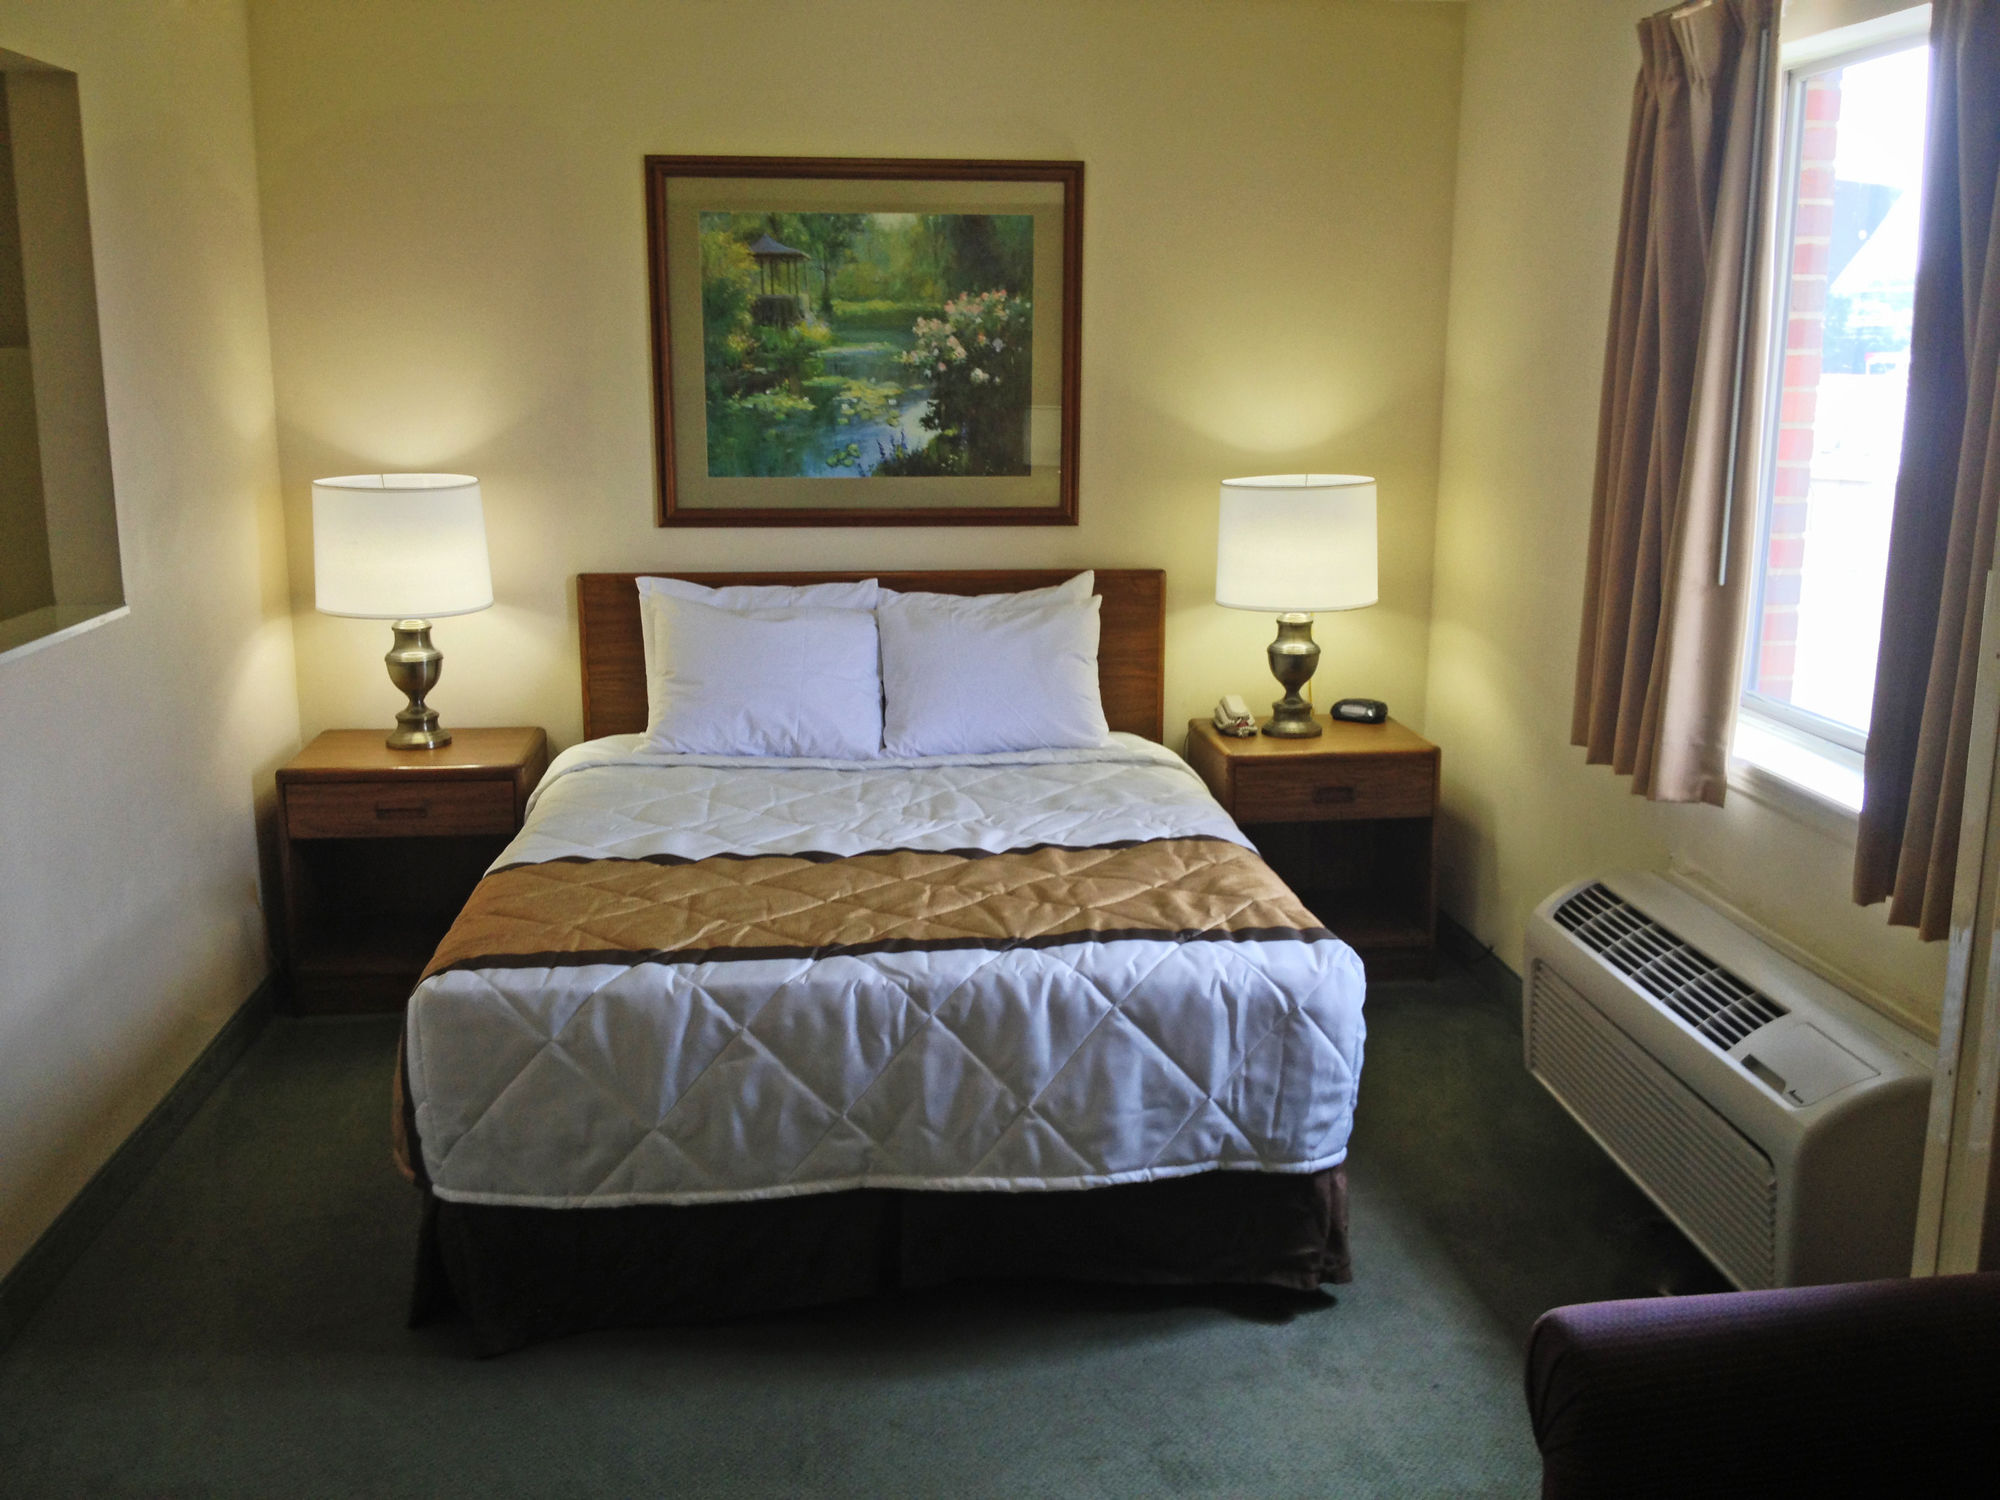 Extended Stay America - Birmingham - Inverness in Birmingham, AL